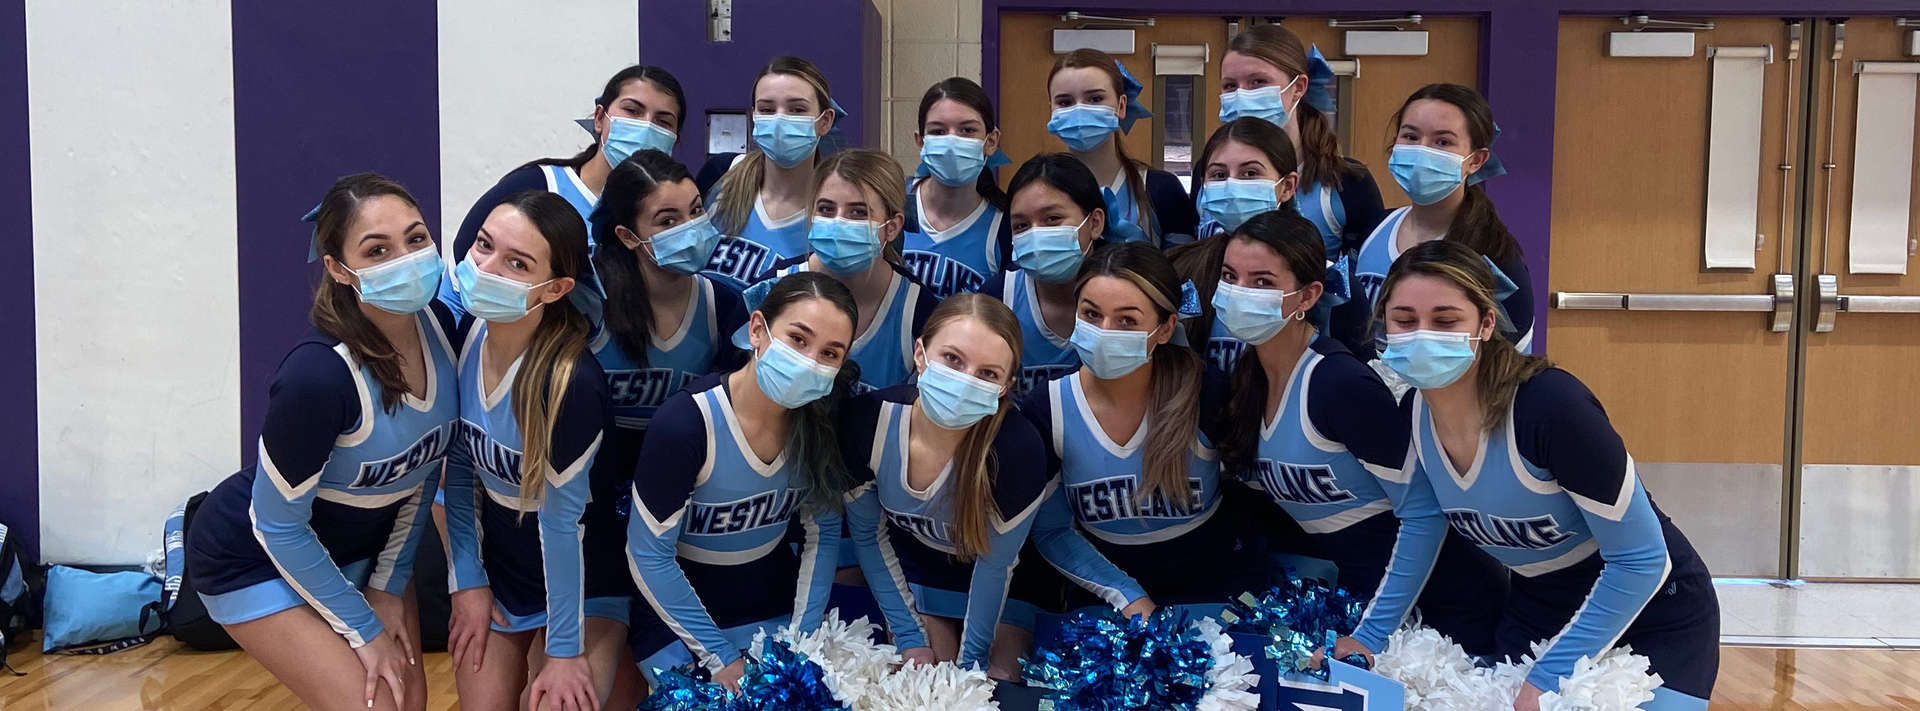 Cheerleading team posing with masks